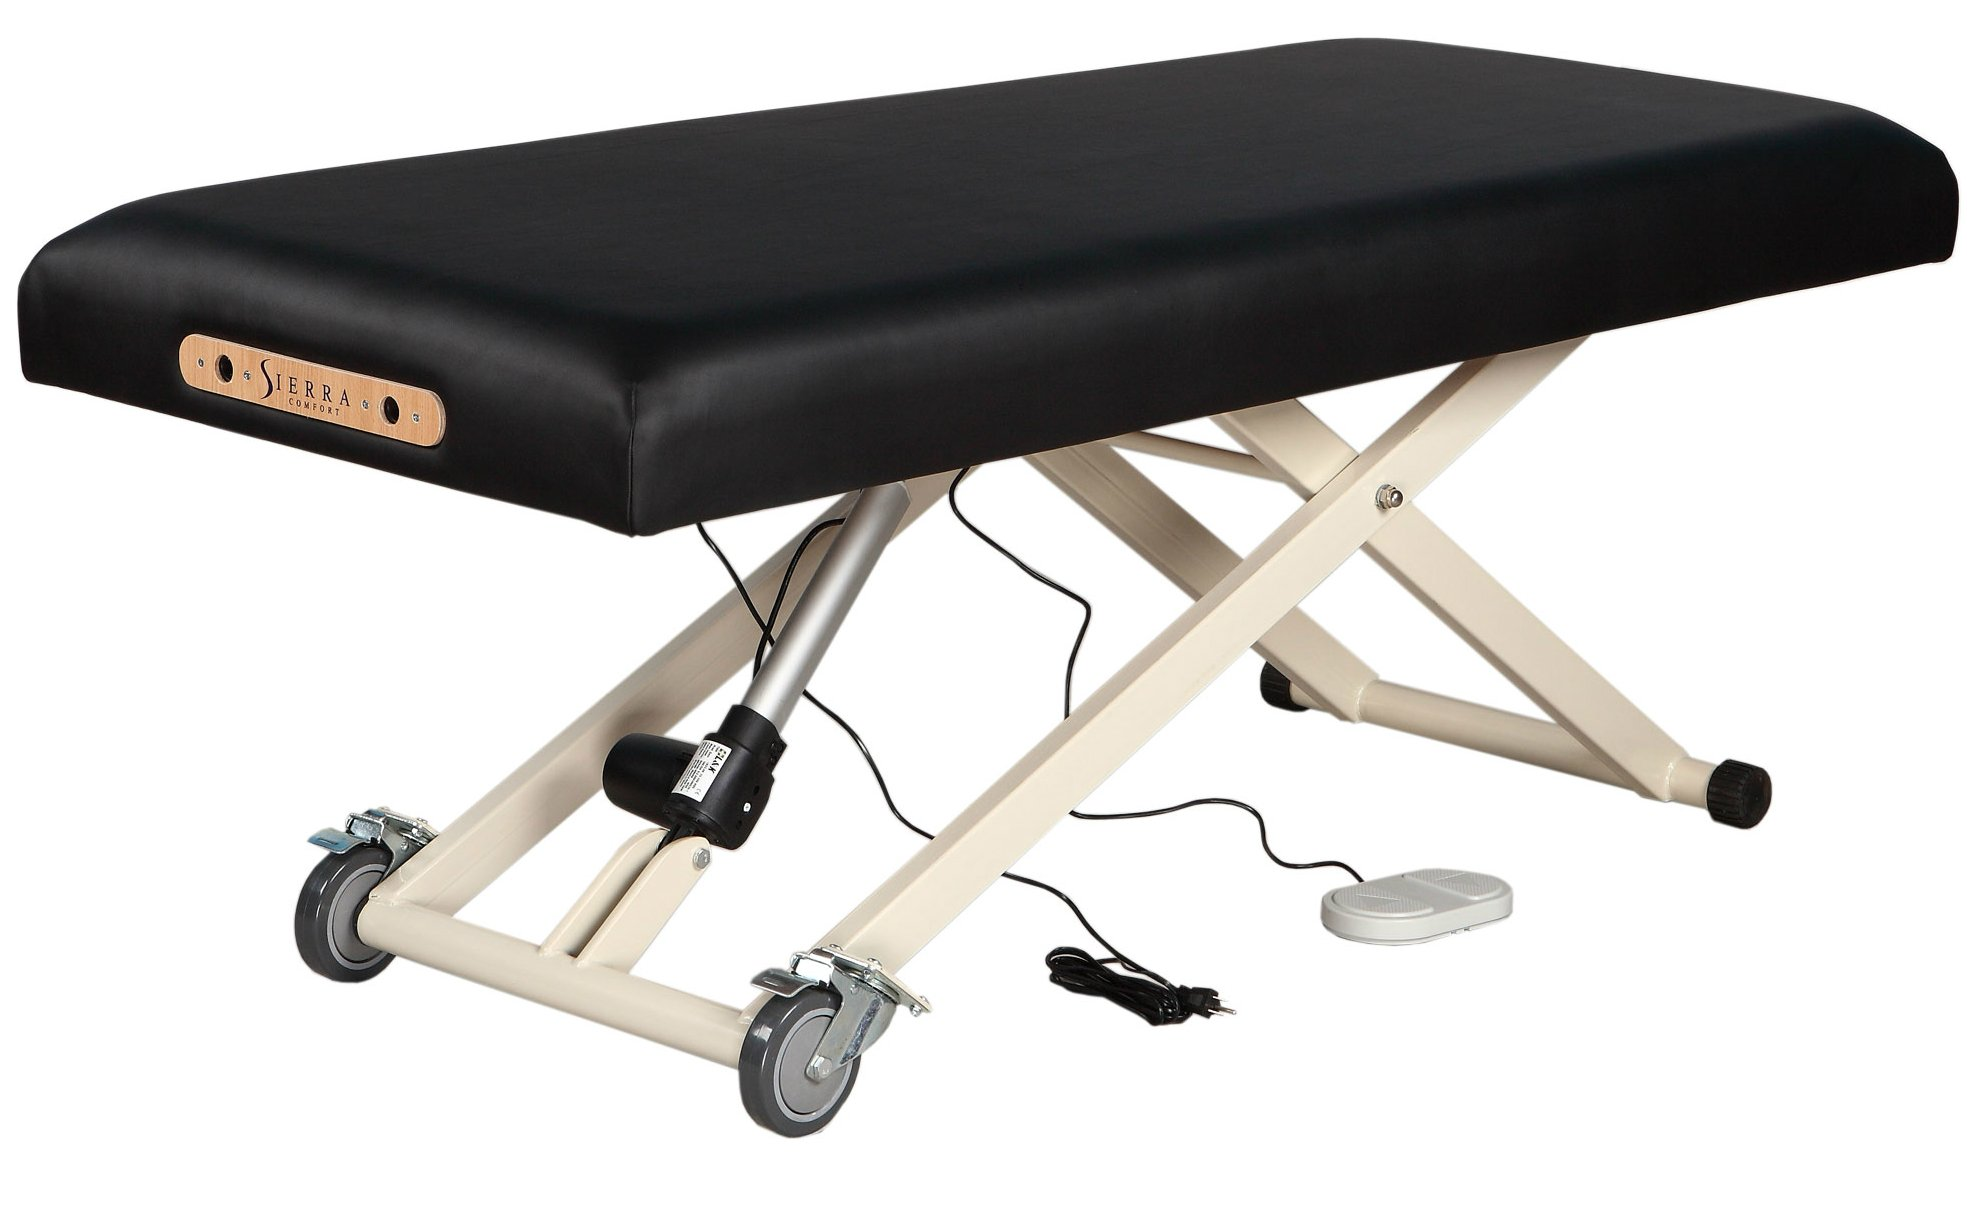 SierraComfort Electric Lift Massage Table, Black by SierraComfort (Image #2)